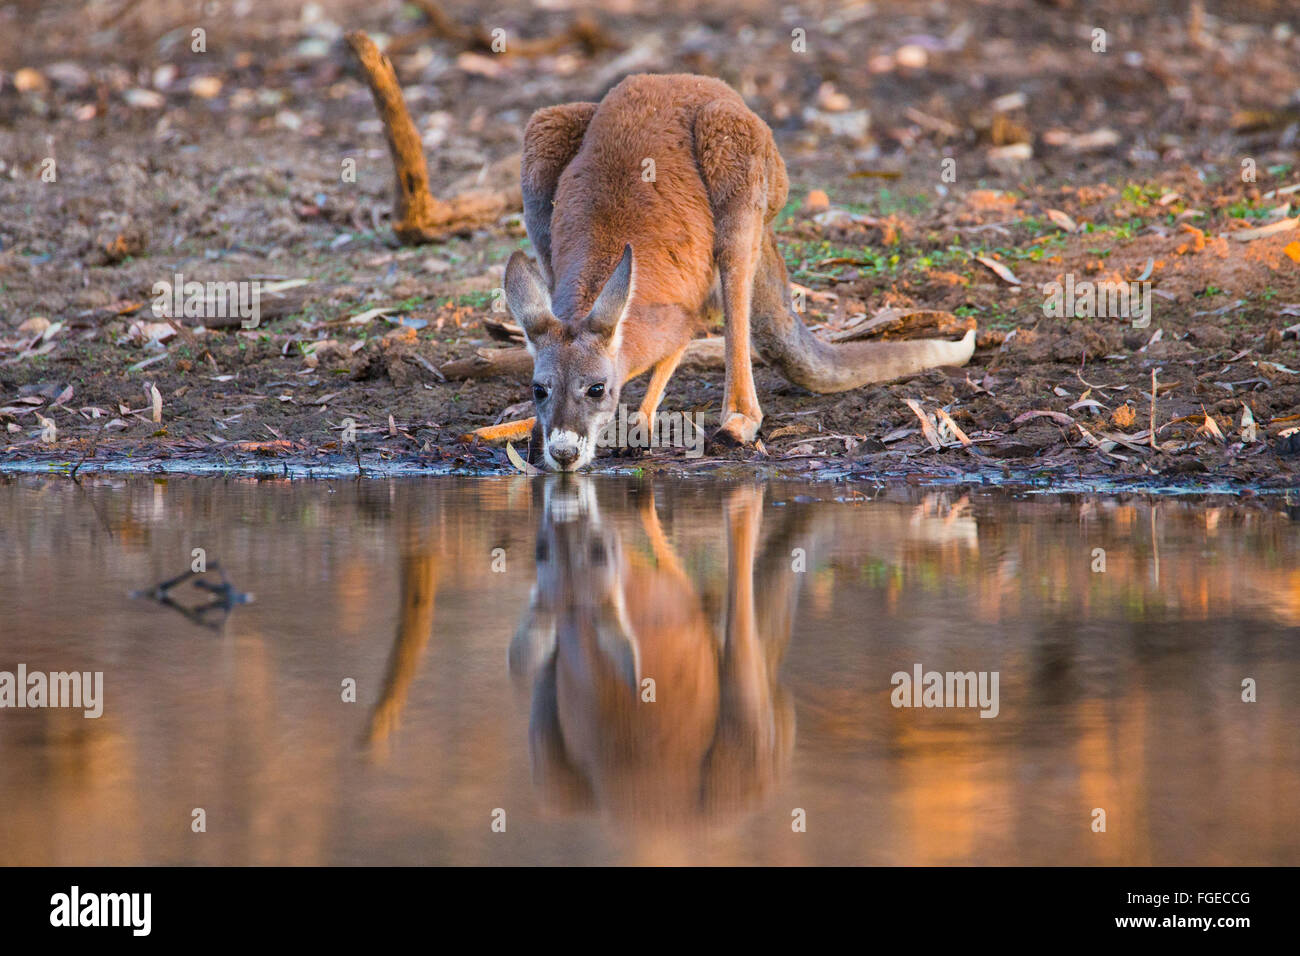 Young male Red Kangaroo (Macropus rufus) drinking from a billabong in in outback Queensland, Australia - Stock Image